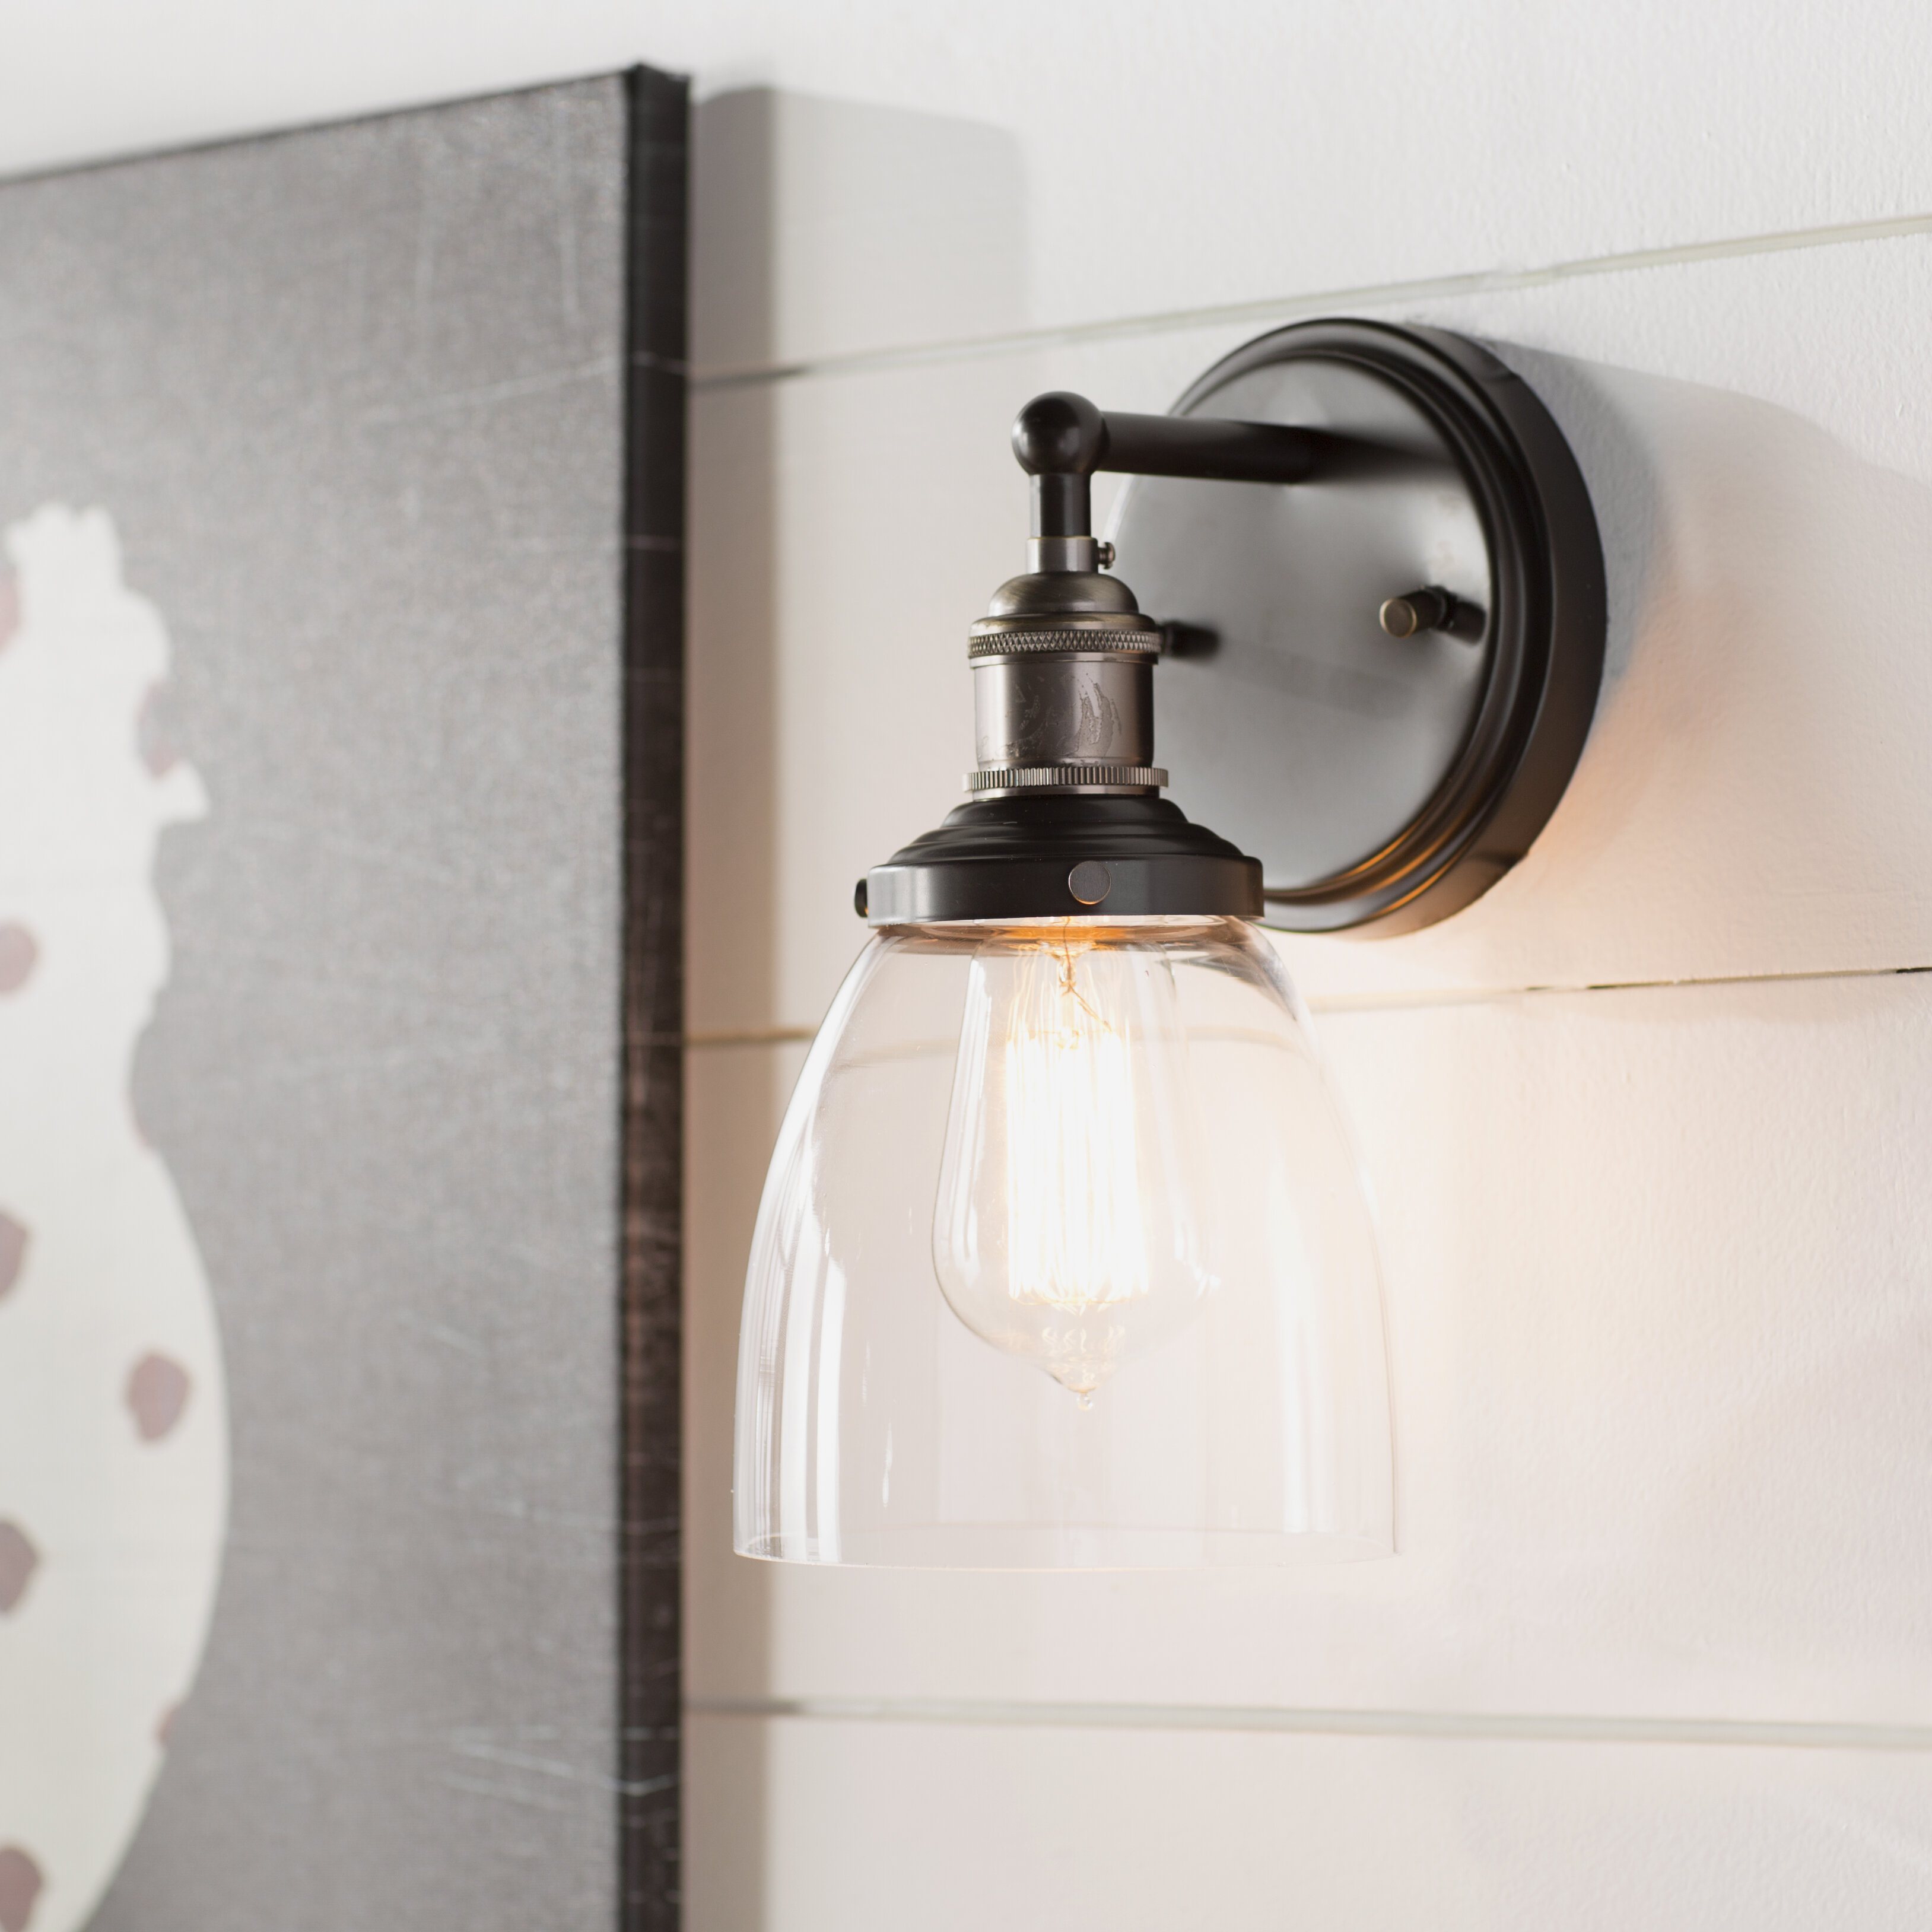 northeast frosted glass fst wall shown cfm with outdoor sconce light med nautical wide inch item lantern